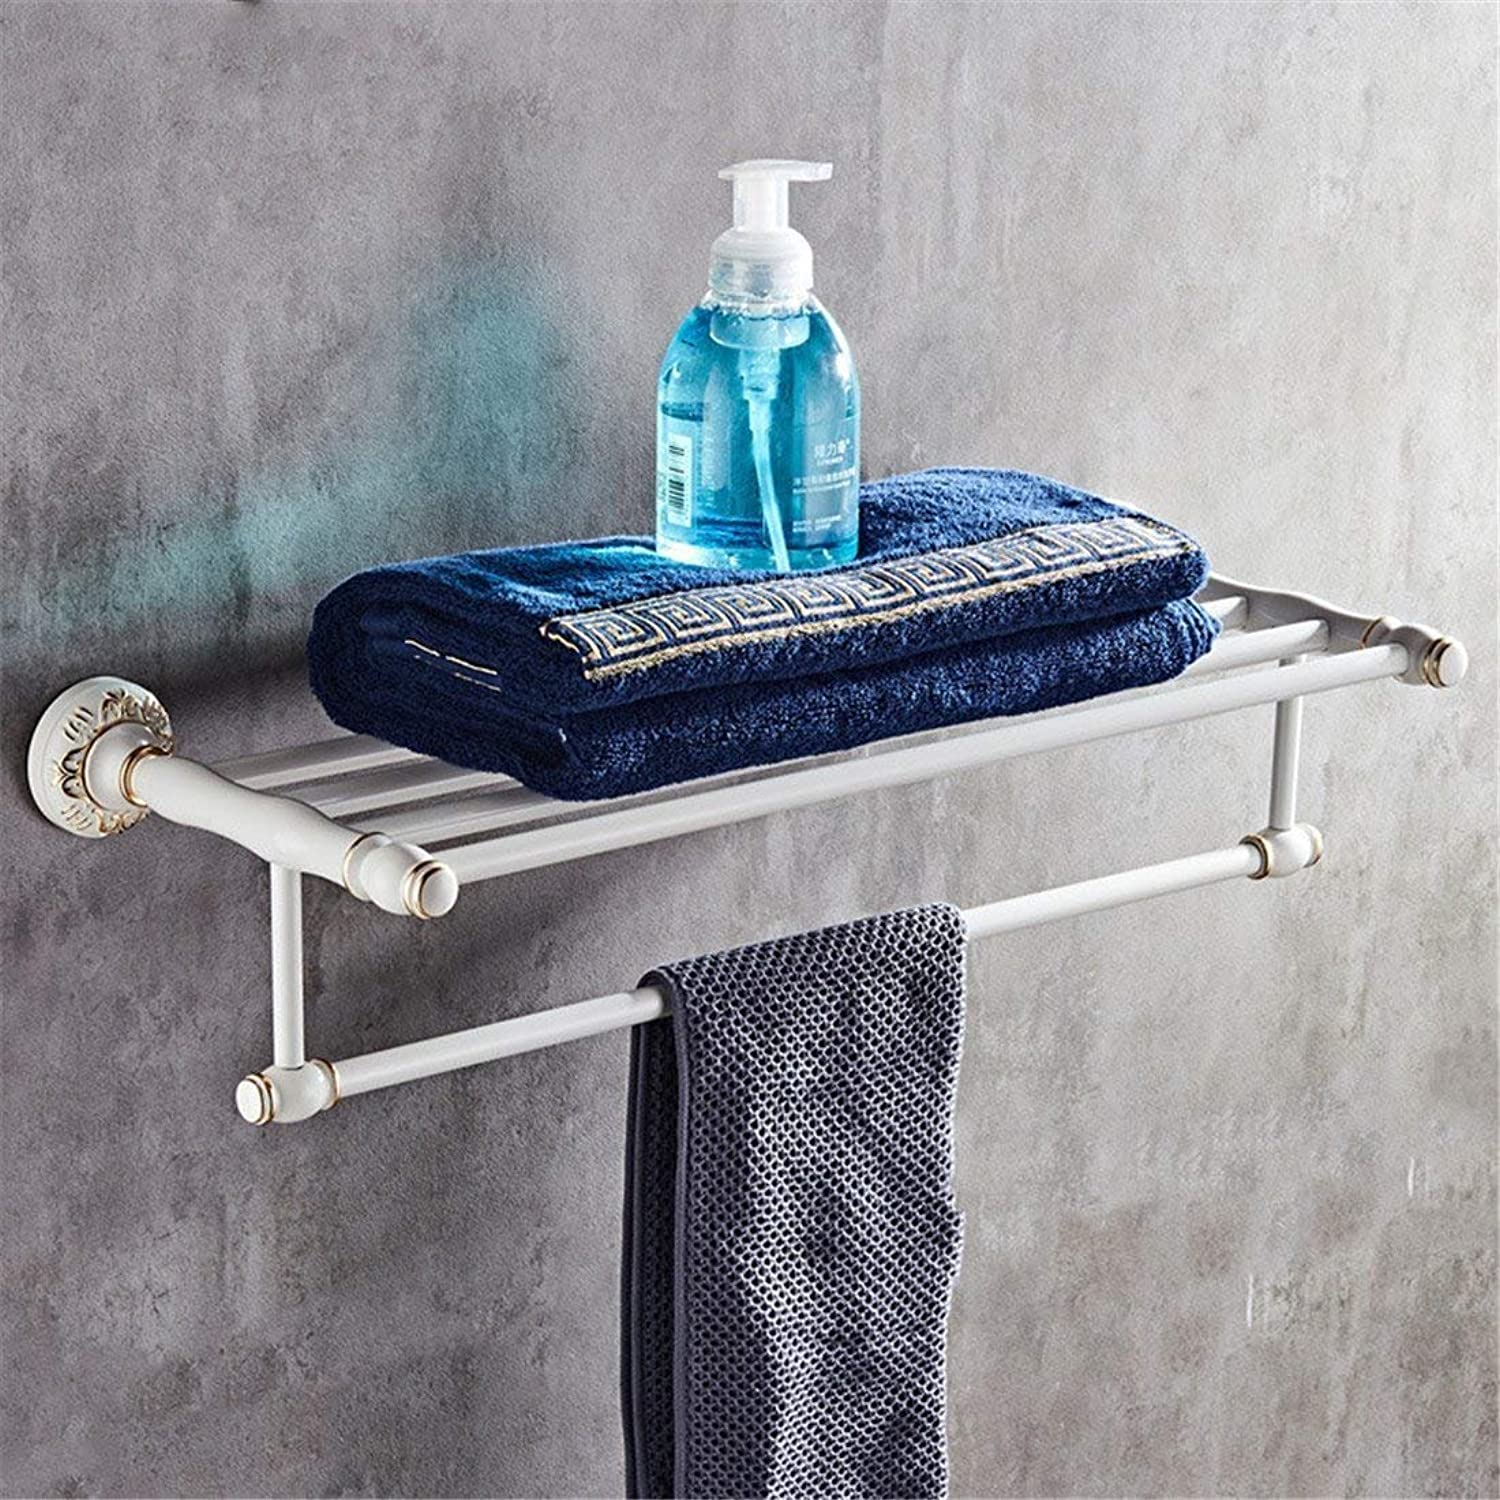 White Paper of European Style of The Alloy of Aluminum Accessories for Bathroom, Hair-Towels Door Bar-Towels Toilet Paper, Rack,B